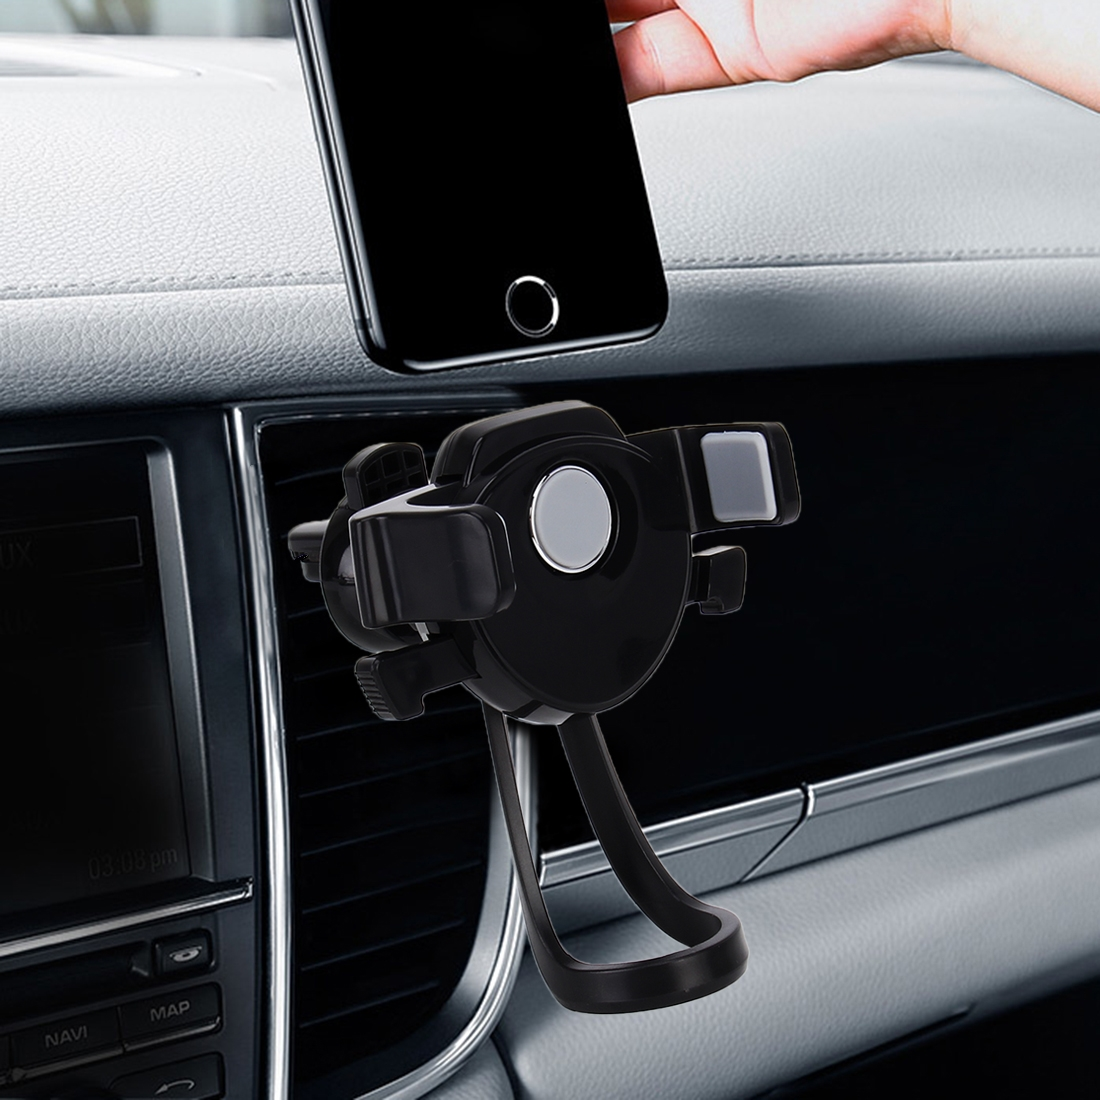 Universal Car Charger Air Vent Mount Phone Holder Stand, For iPhone, Galaxy, Sony, Lenovo, HTC, Huawei and other Smartphones (Width: 64-82mm)